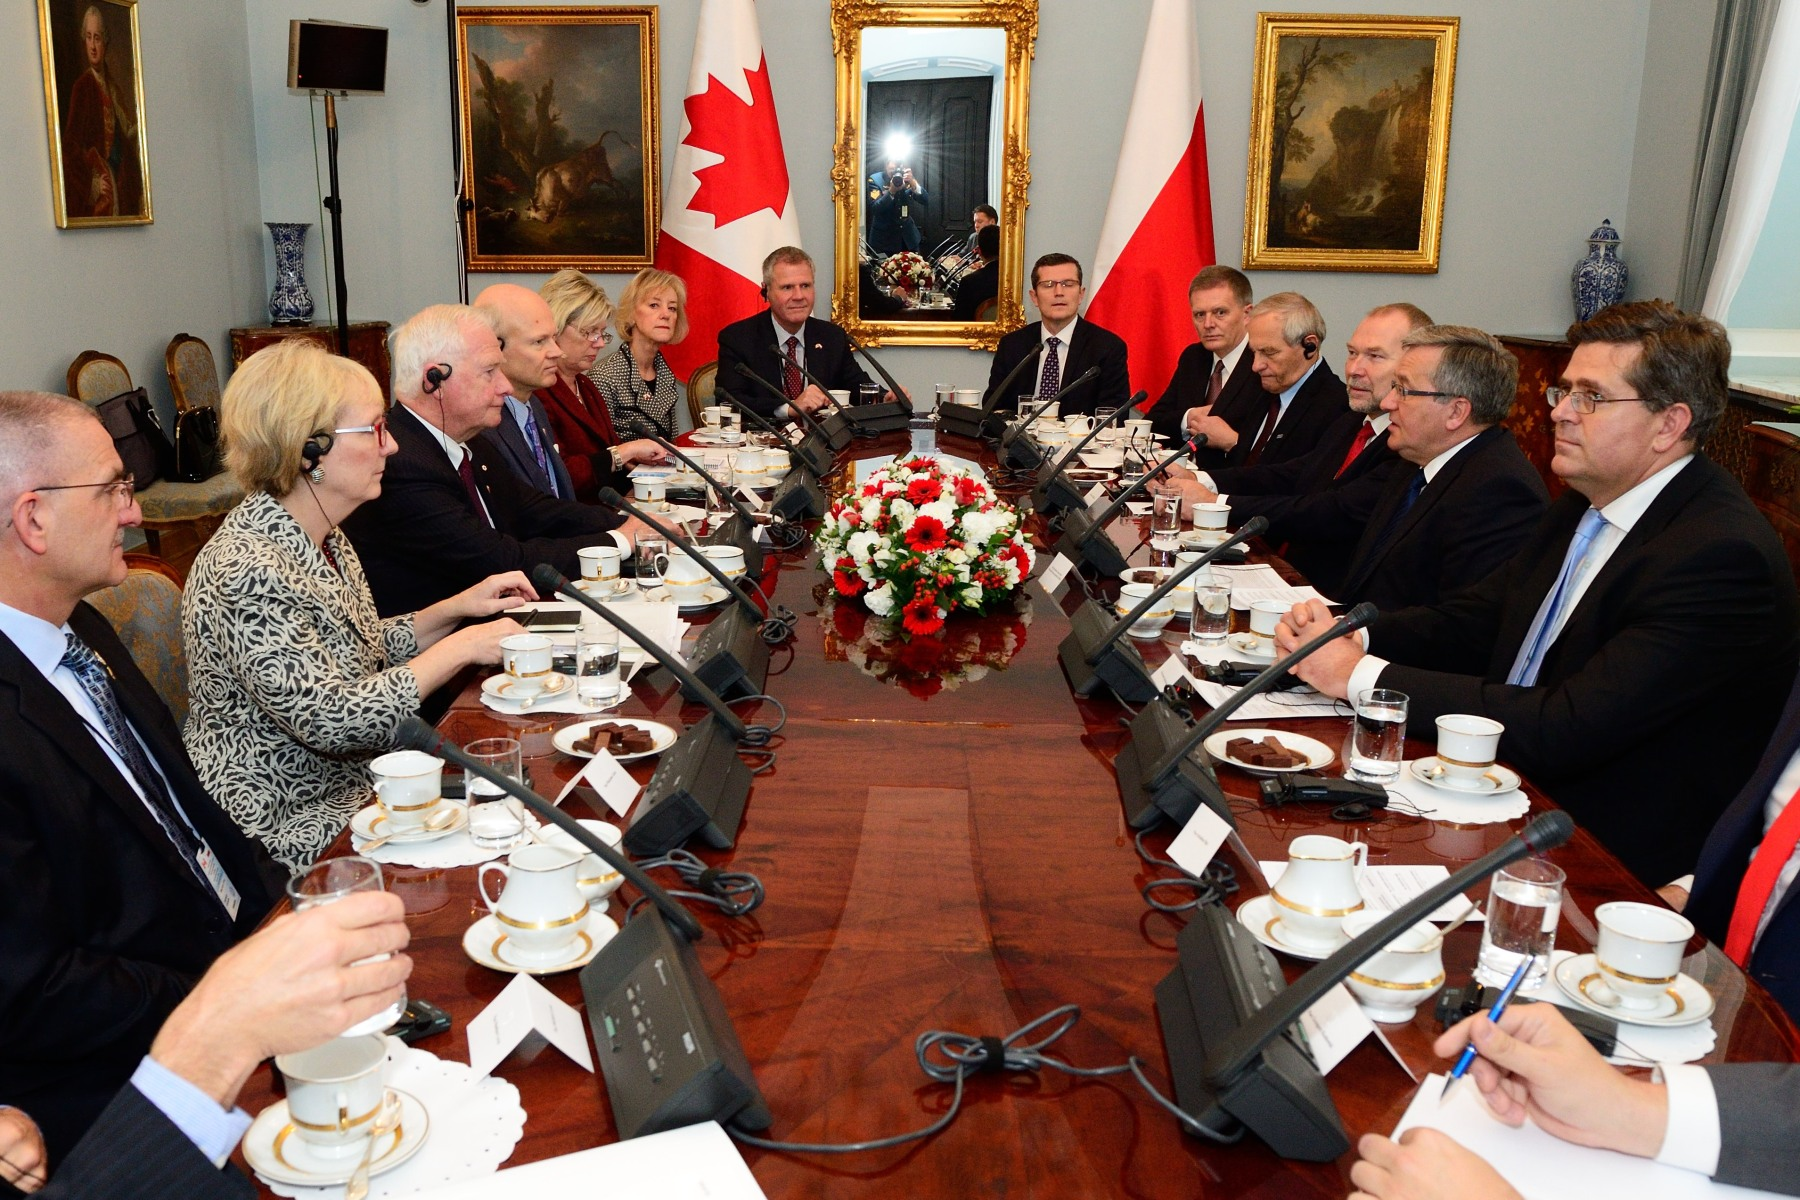 In addition, Canadian delegates, joined by the Governor General, met with the President and with representatives of the Polish government to discuss Canada-Poland relations.